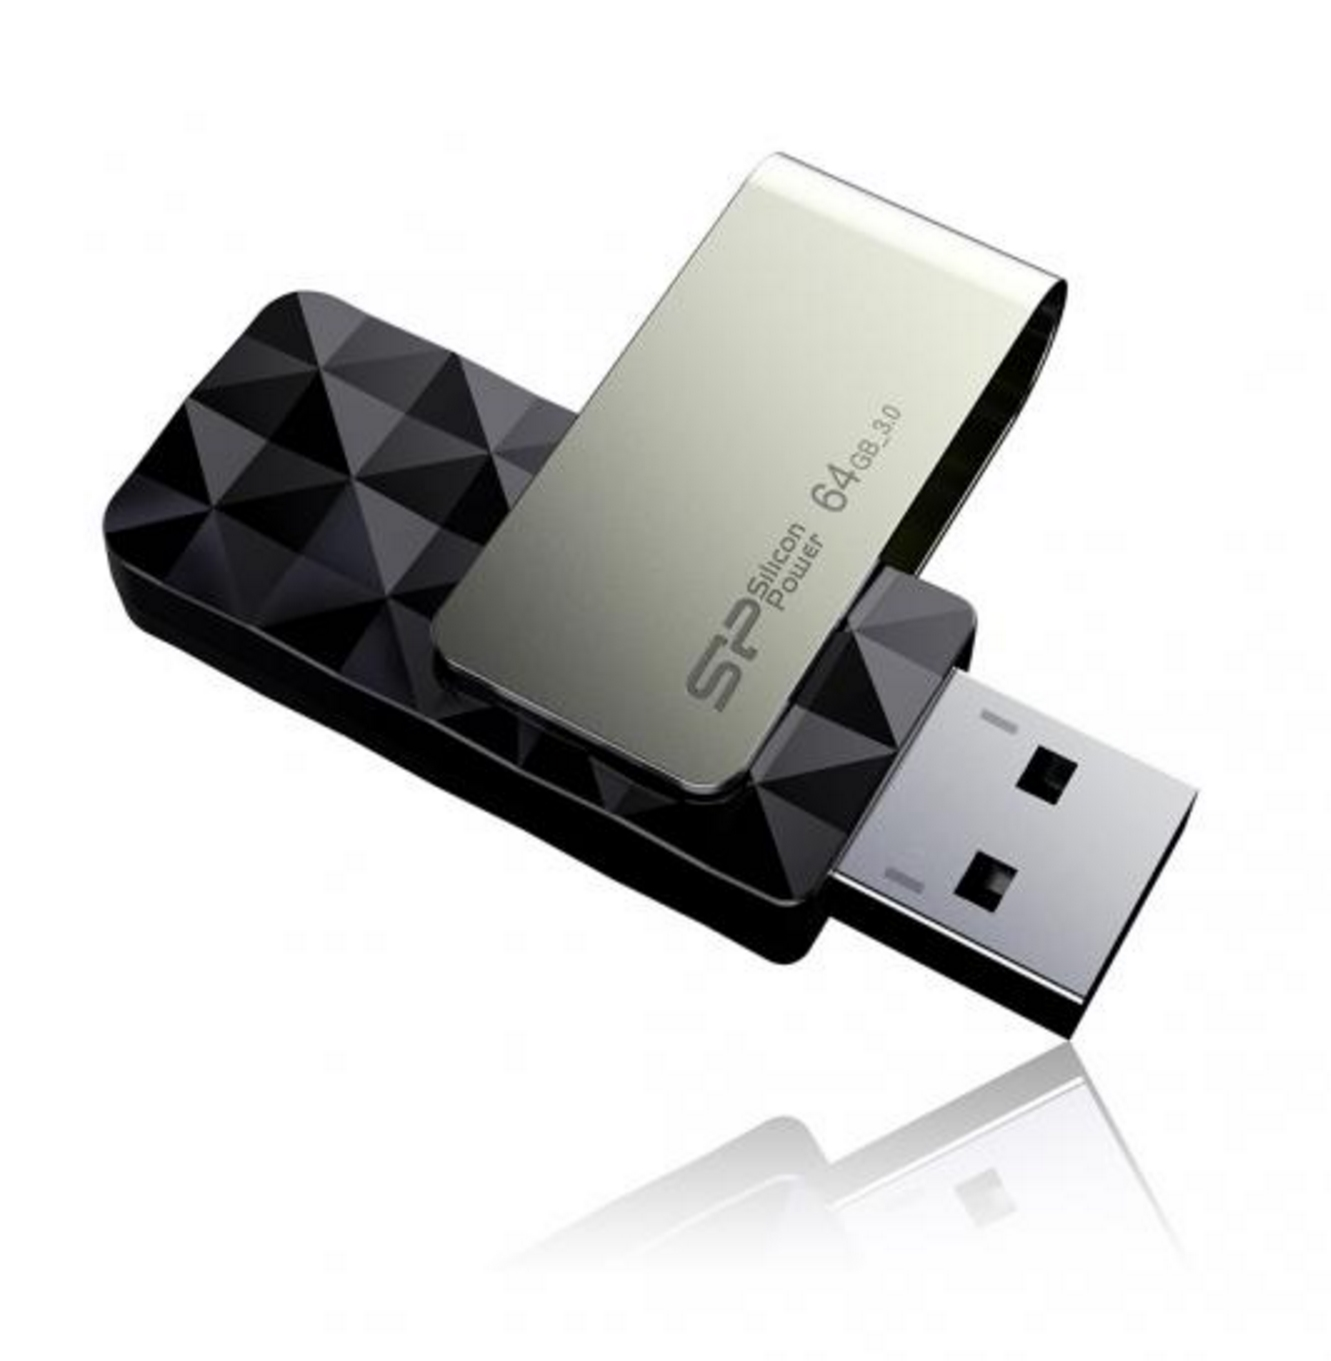 64GB Silicon Power B30 Blaze USB3.0 Flash Drive Swivel Style Black